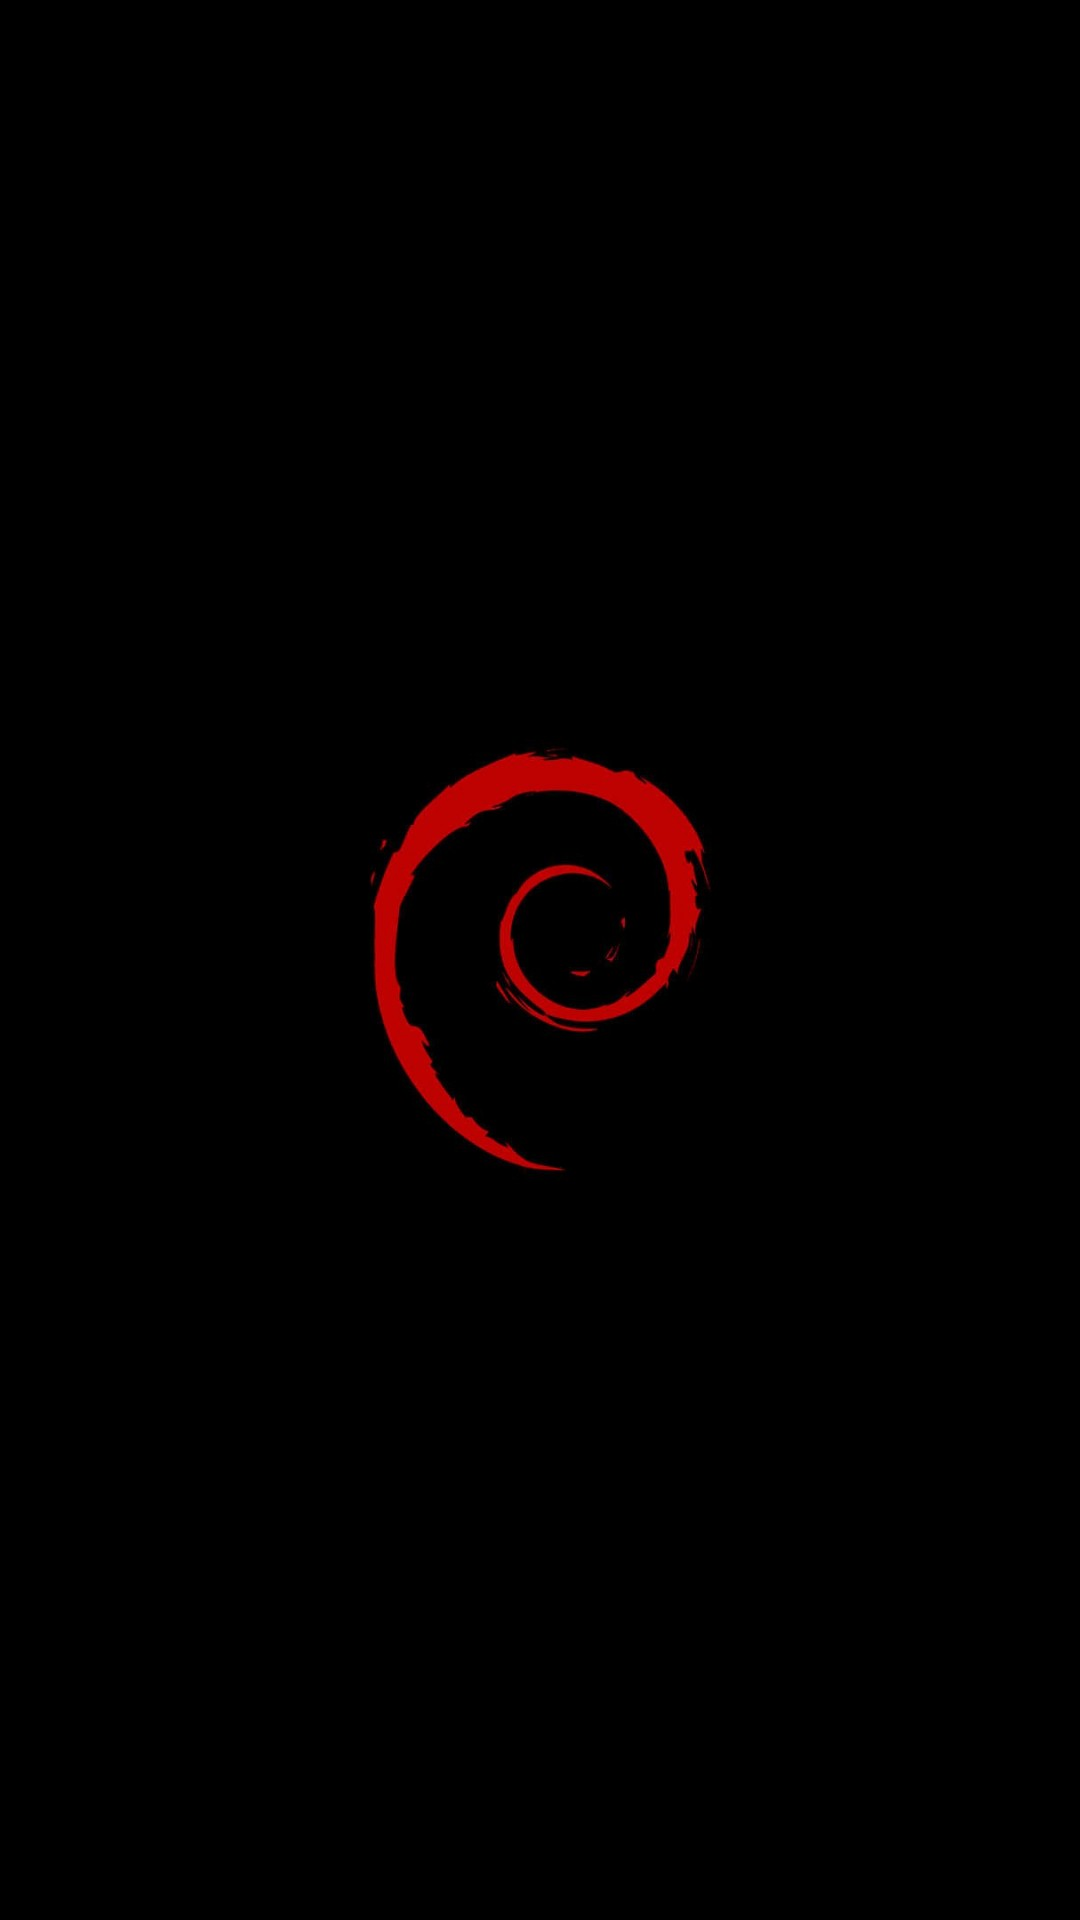 Linux Debian Wallpaper for SONY Xperia Z1